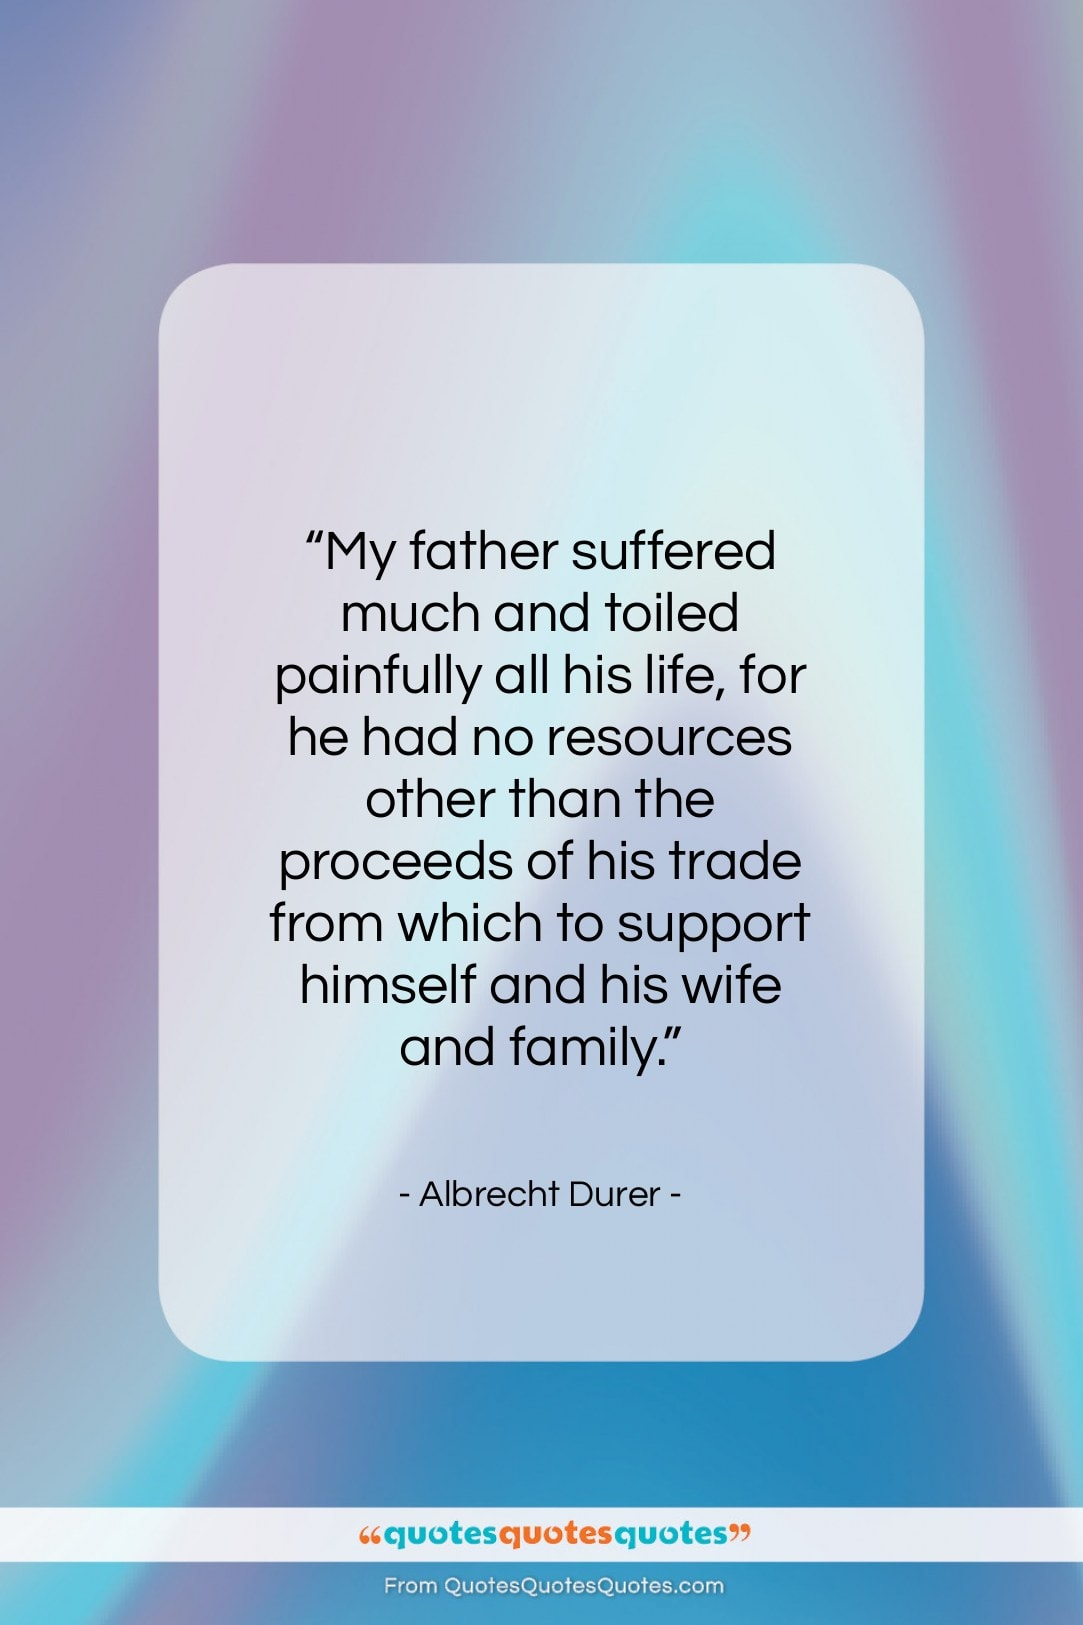 """Albrecht Durer quote: """"My father suffered much and toiled painfully…""""- at QuotesQuotesQuotes.com"""